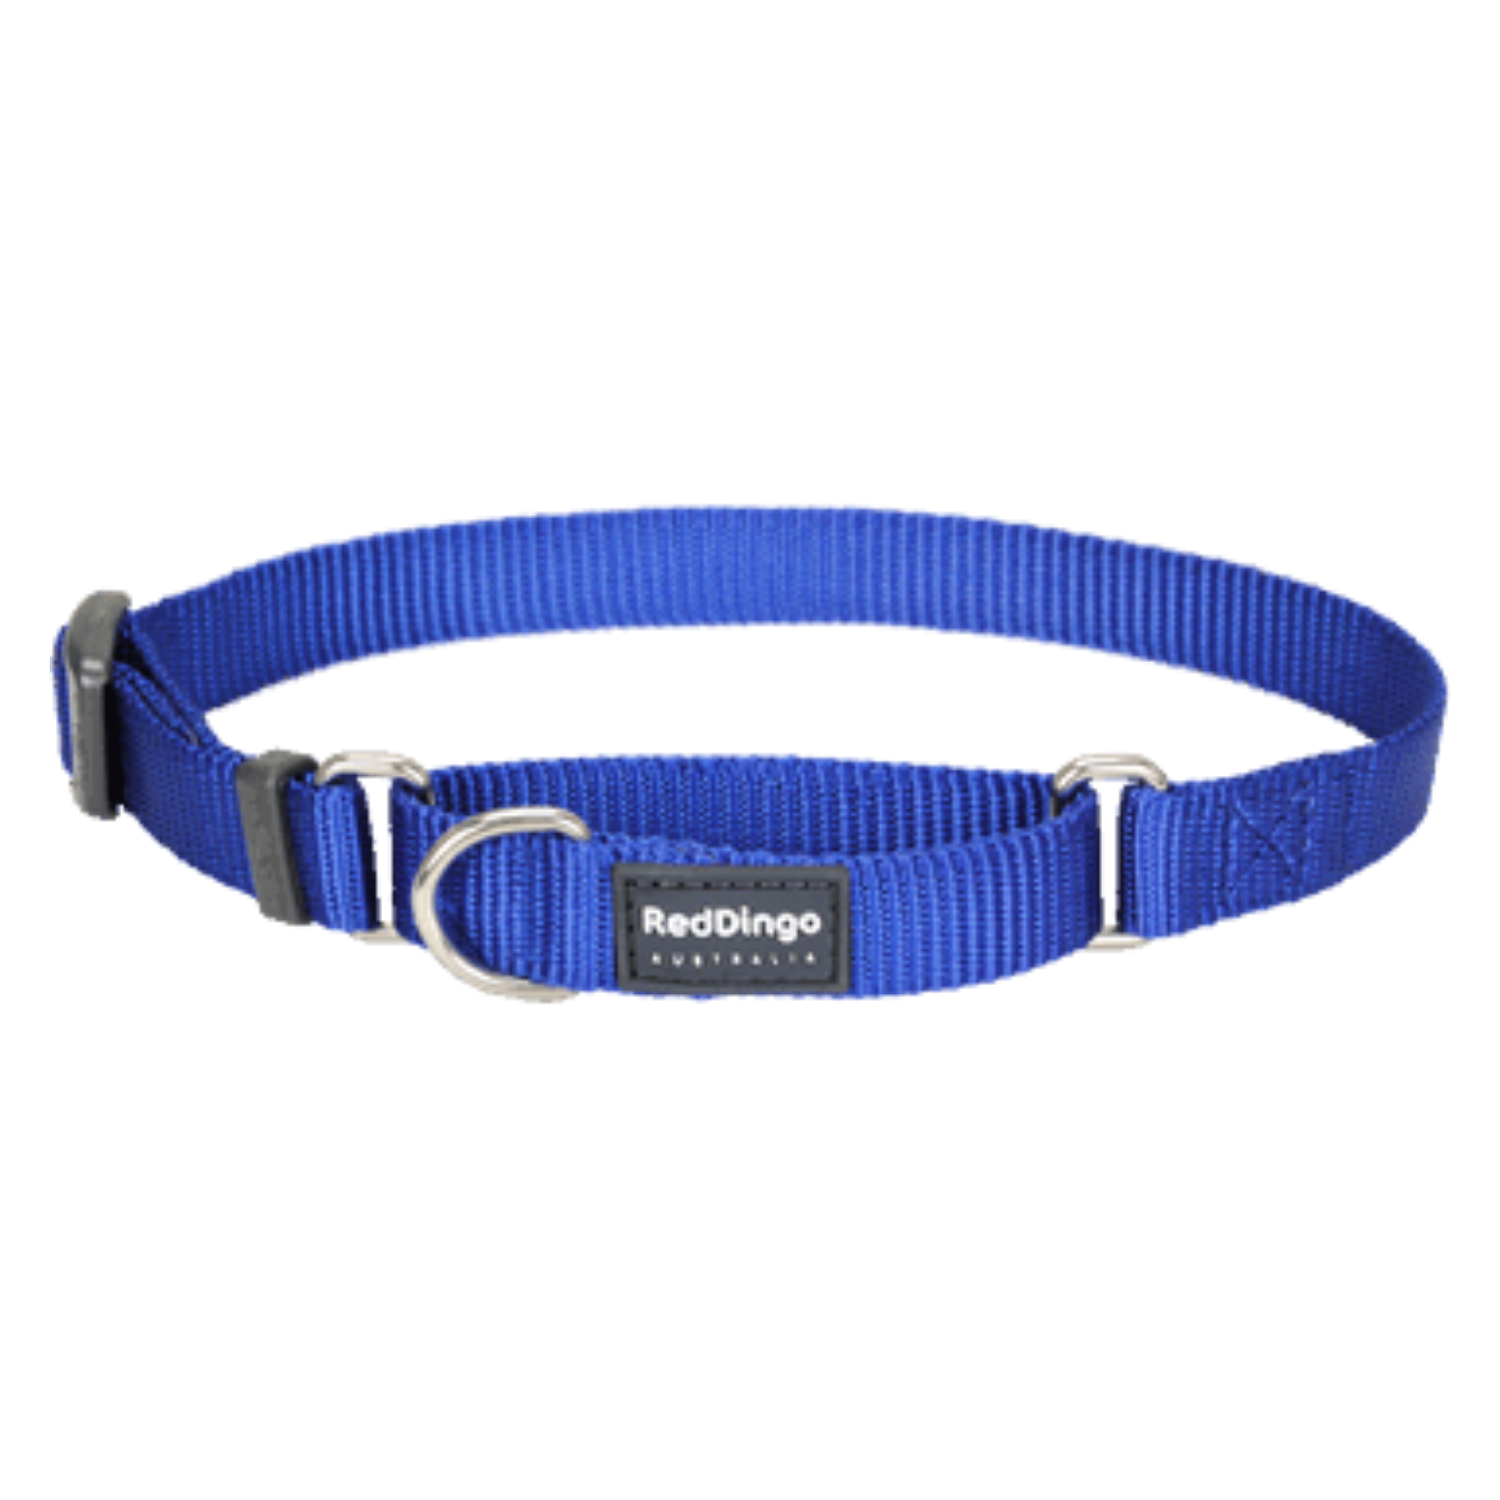 Red Dingo Martingale Half Check Collar - Classic Range (Dark Blue)